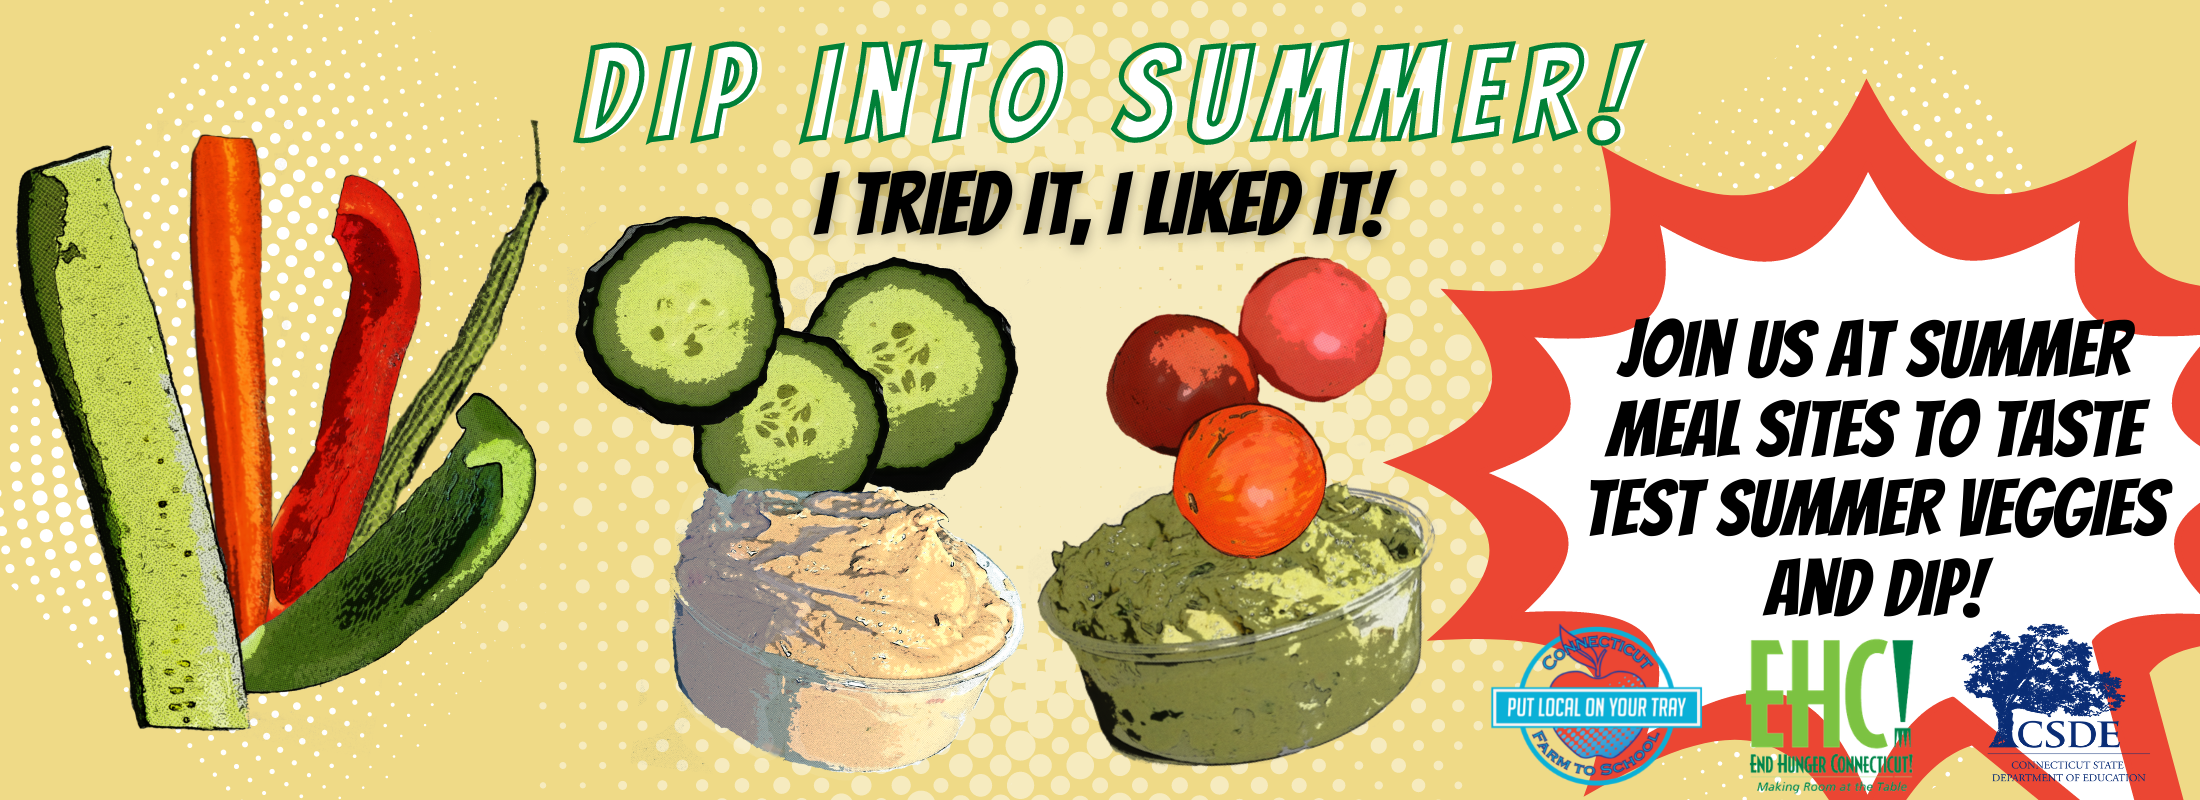 Dip into summer- I tried it I liked it!